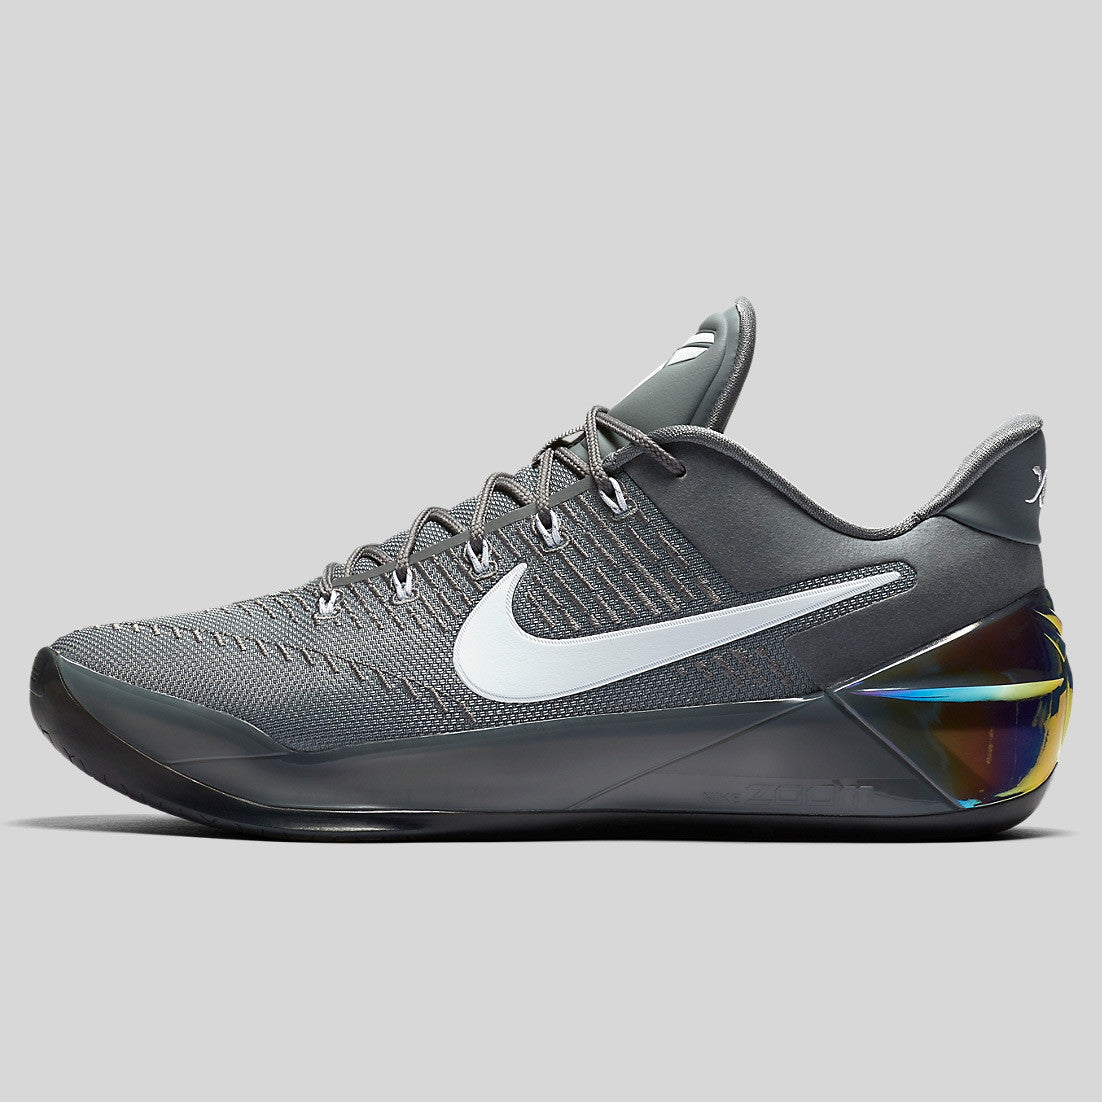 the latest 54125 e94b5 Nike Kobe A.D. EP Cool Grey White Black (852427-010)   KIX-FILES